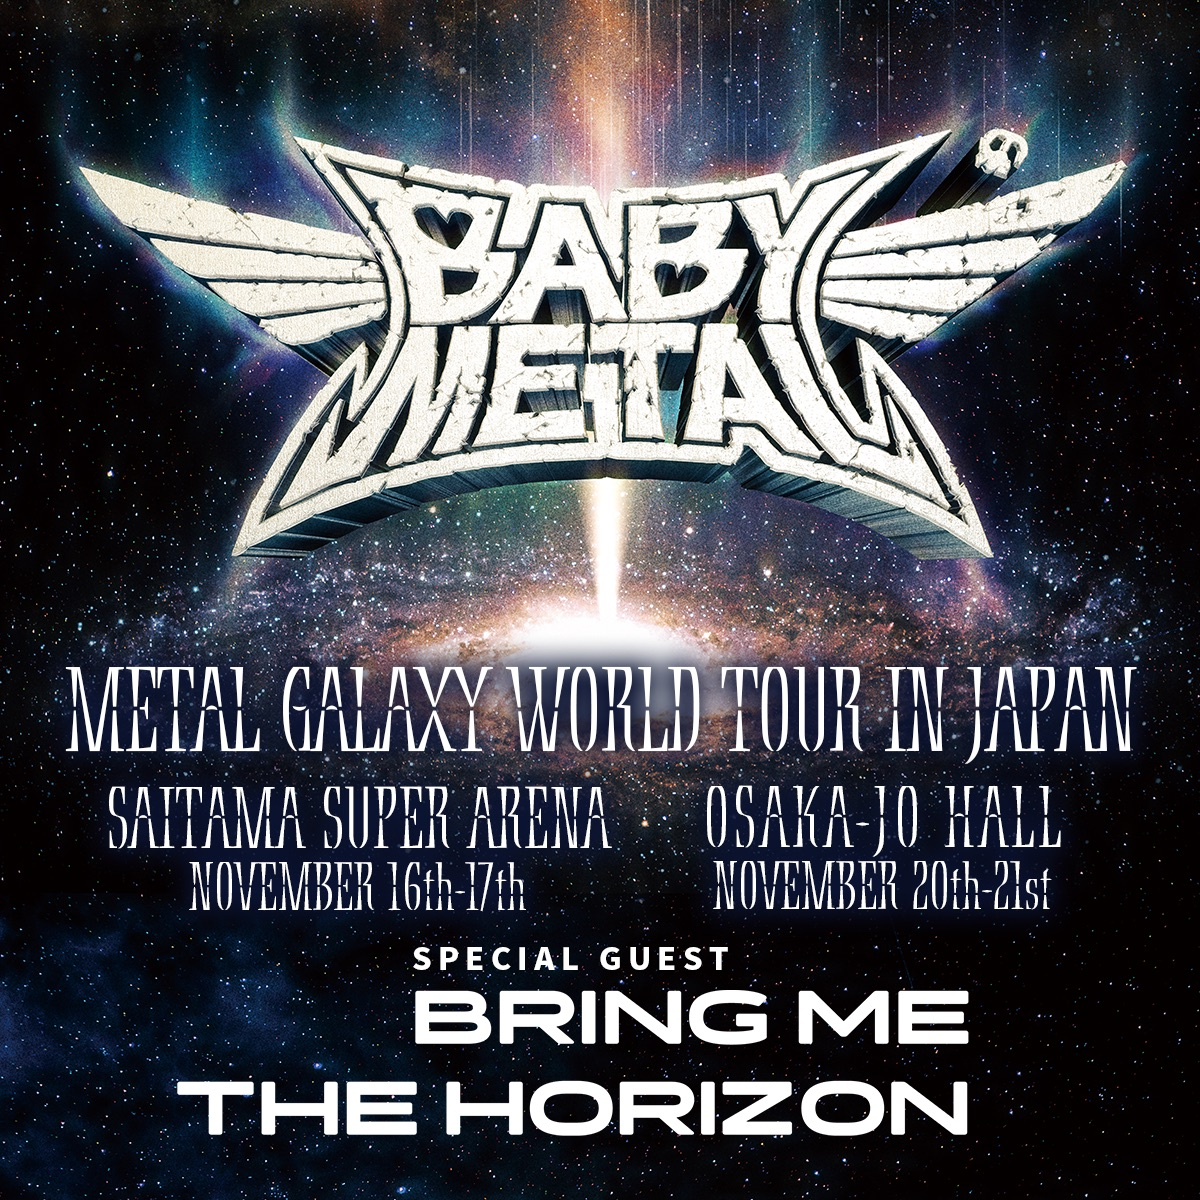 Bring Me The Horizon Tour 2020.Bring Me The Horizon Are Confirmed As The Support Artist For